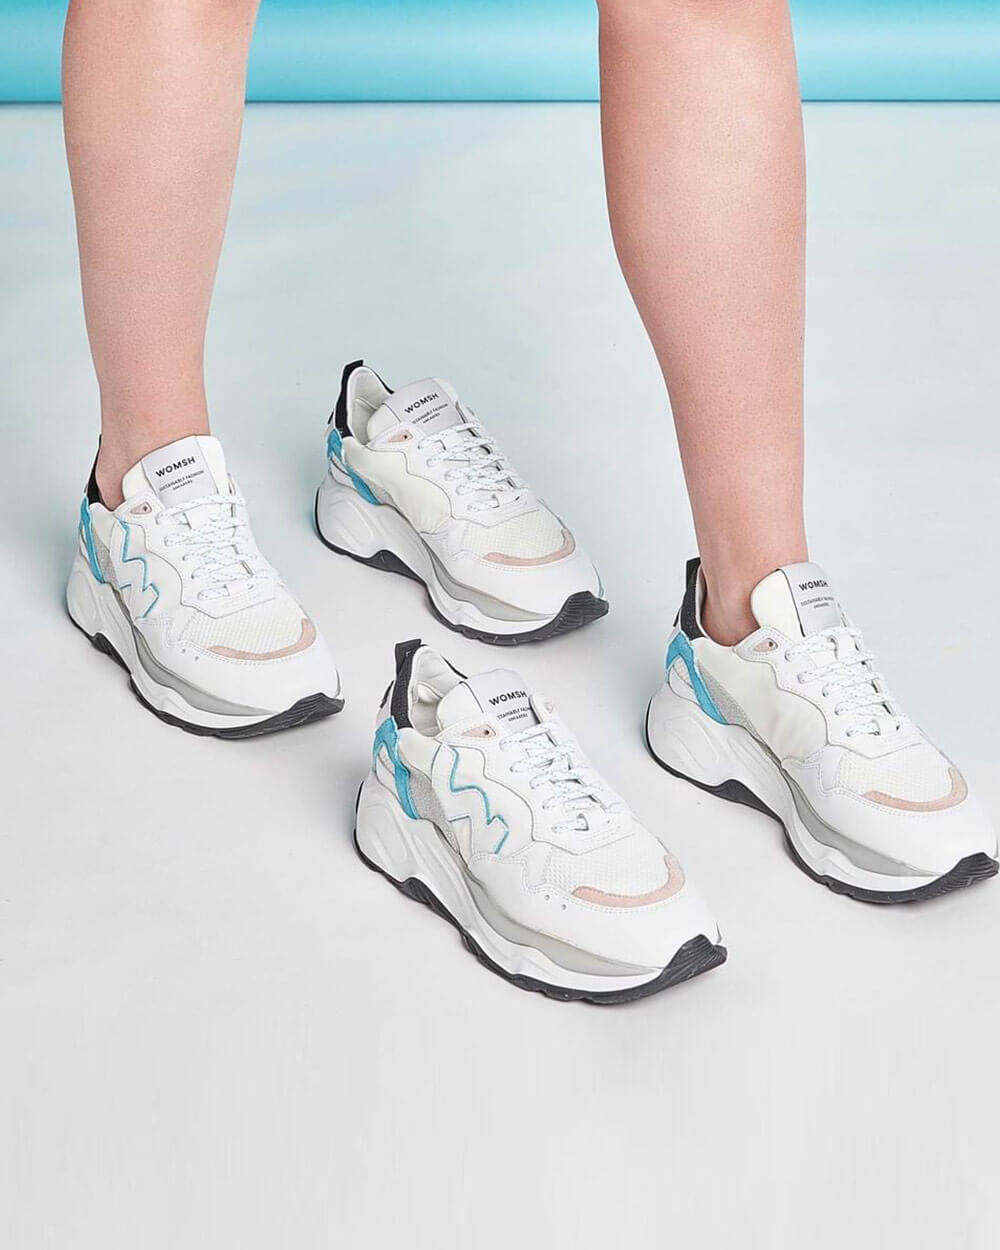 Womsh sustainable sneakers